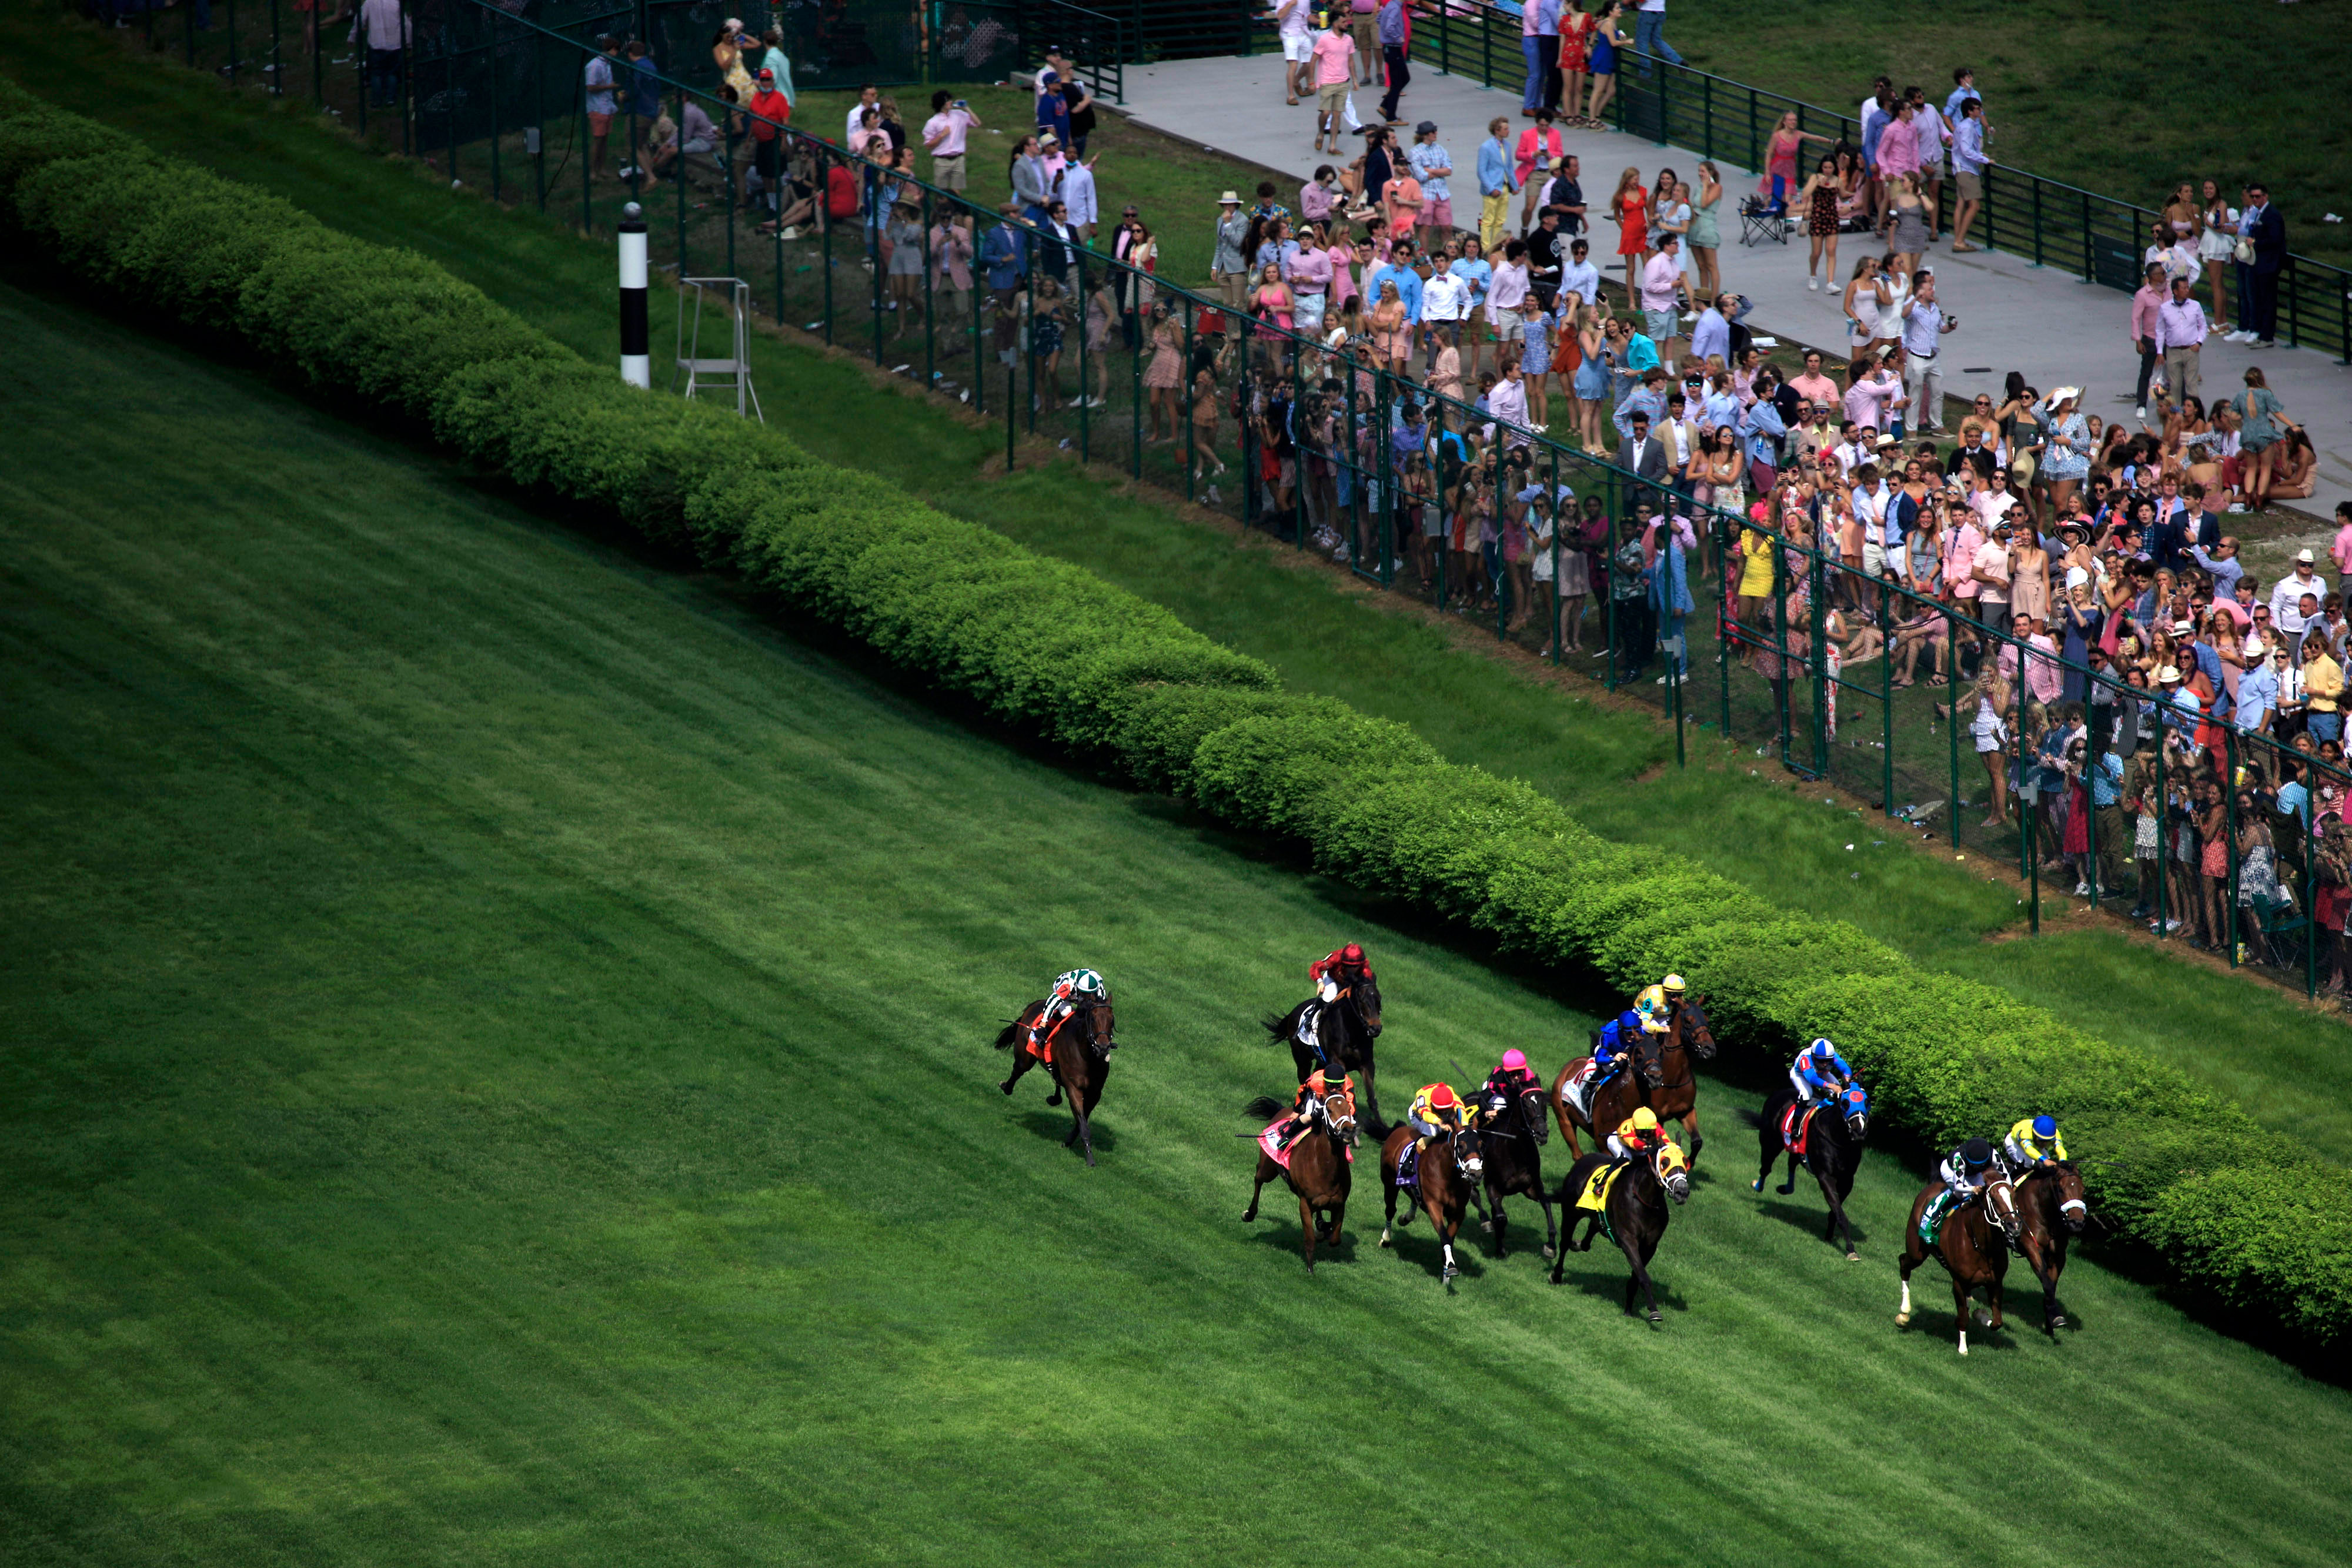 Thoroughbred racehorses compete in a turf race at Churchill Downs on April 30 ahead of the Kentucky Derby in Louisville.